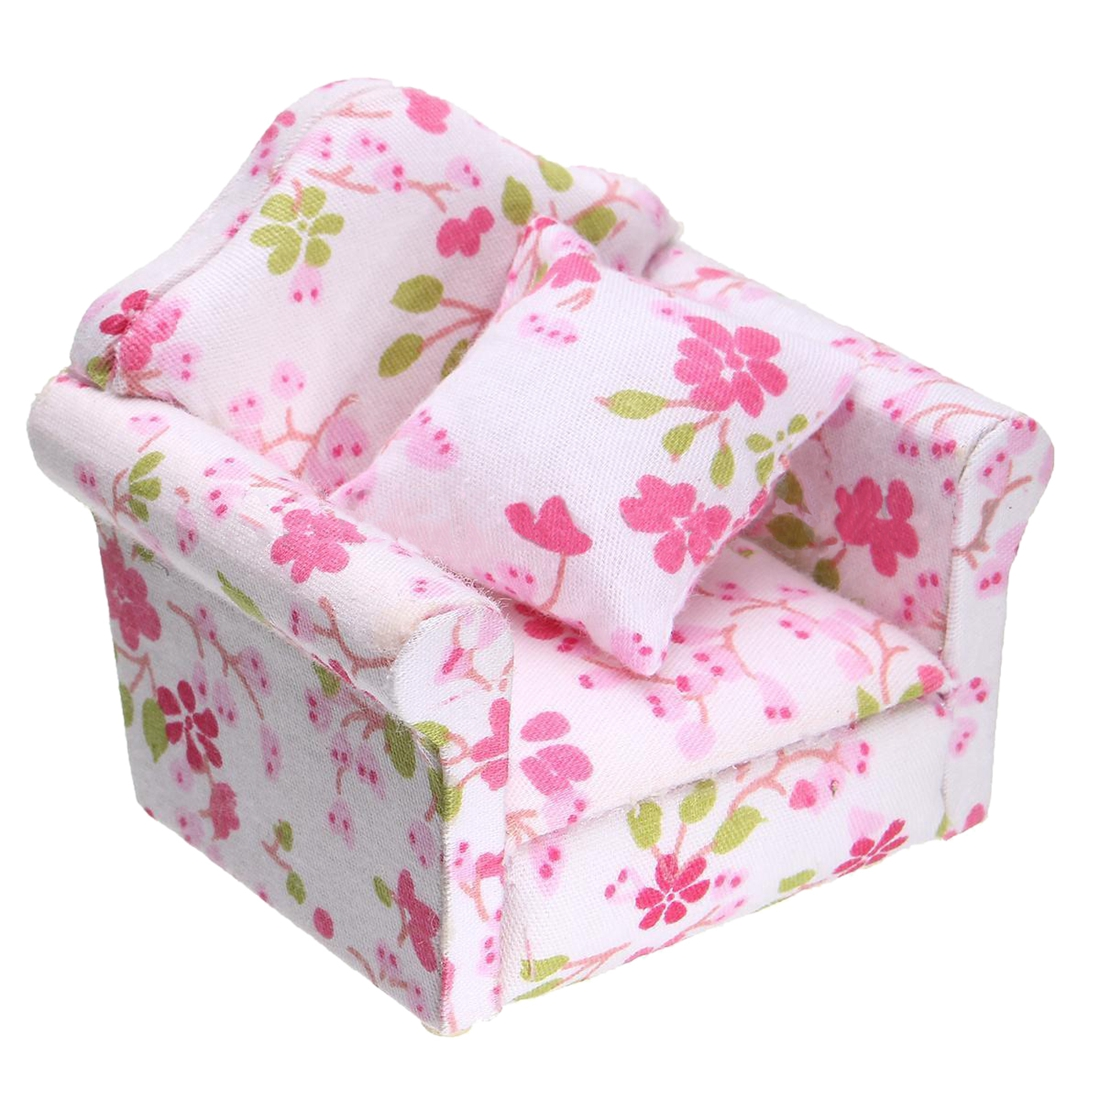 Wott Best Sale 1/12 Scale Dollhouse Miniature Furniture Wooden Recliner Chaise Couch Sofa Pink Delicious In Taste Dolls & Stuffed Toys Toys & Hobbies